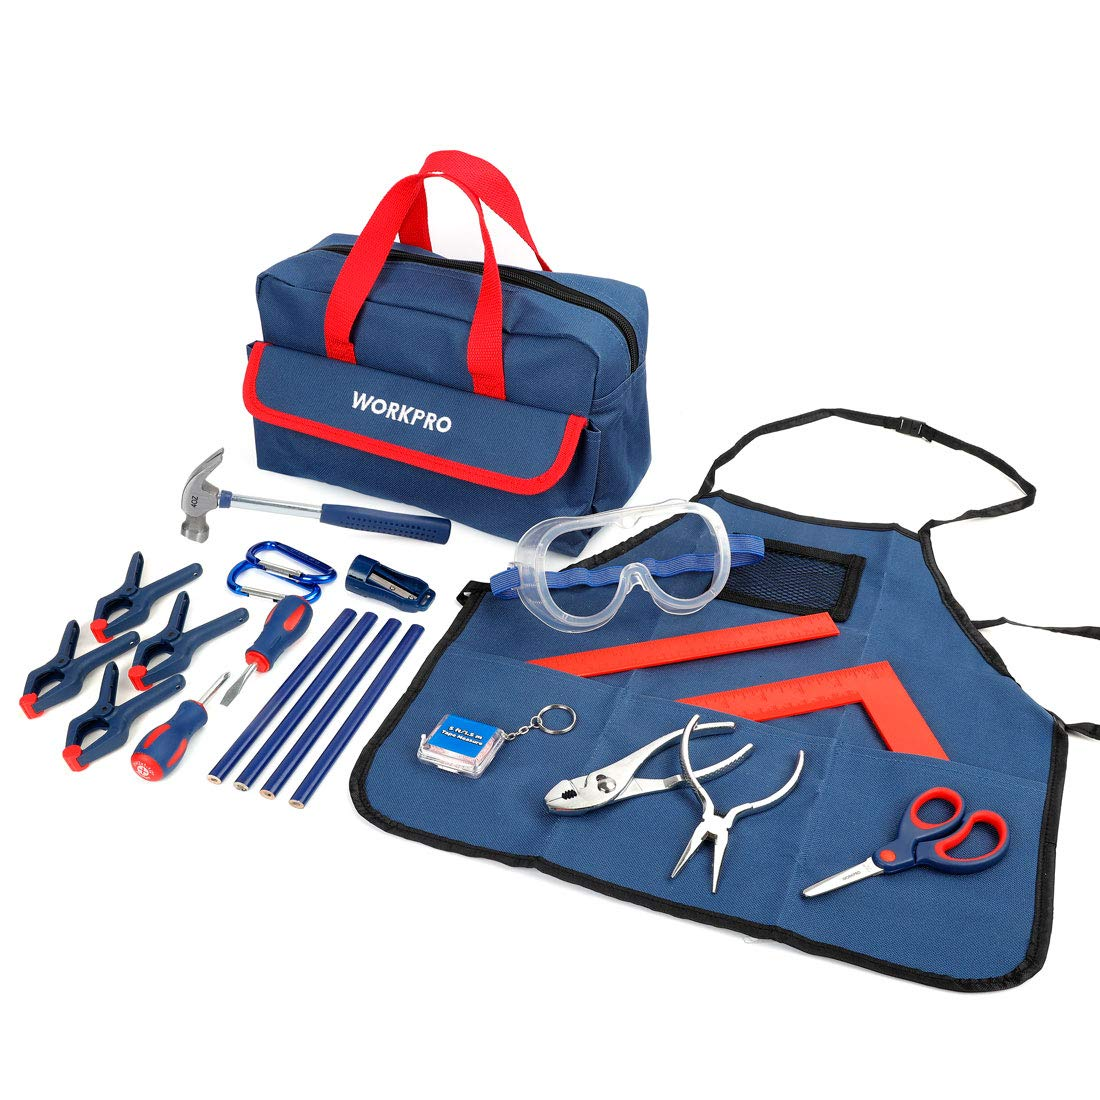 WORKPRO 23-Piece Children's Tool Set with Real Hand Tools, Safety Goggles, Storage Bag for Beginner, Kids Learning - Blue by WORKPRO